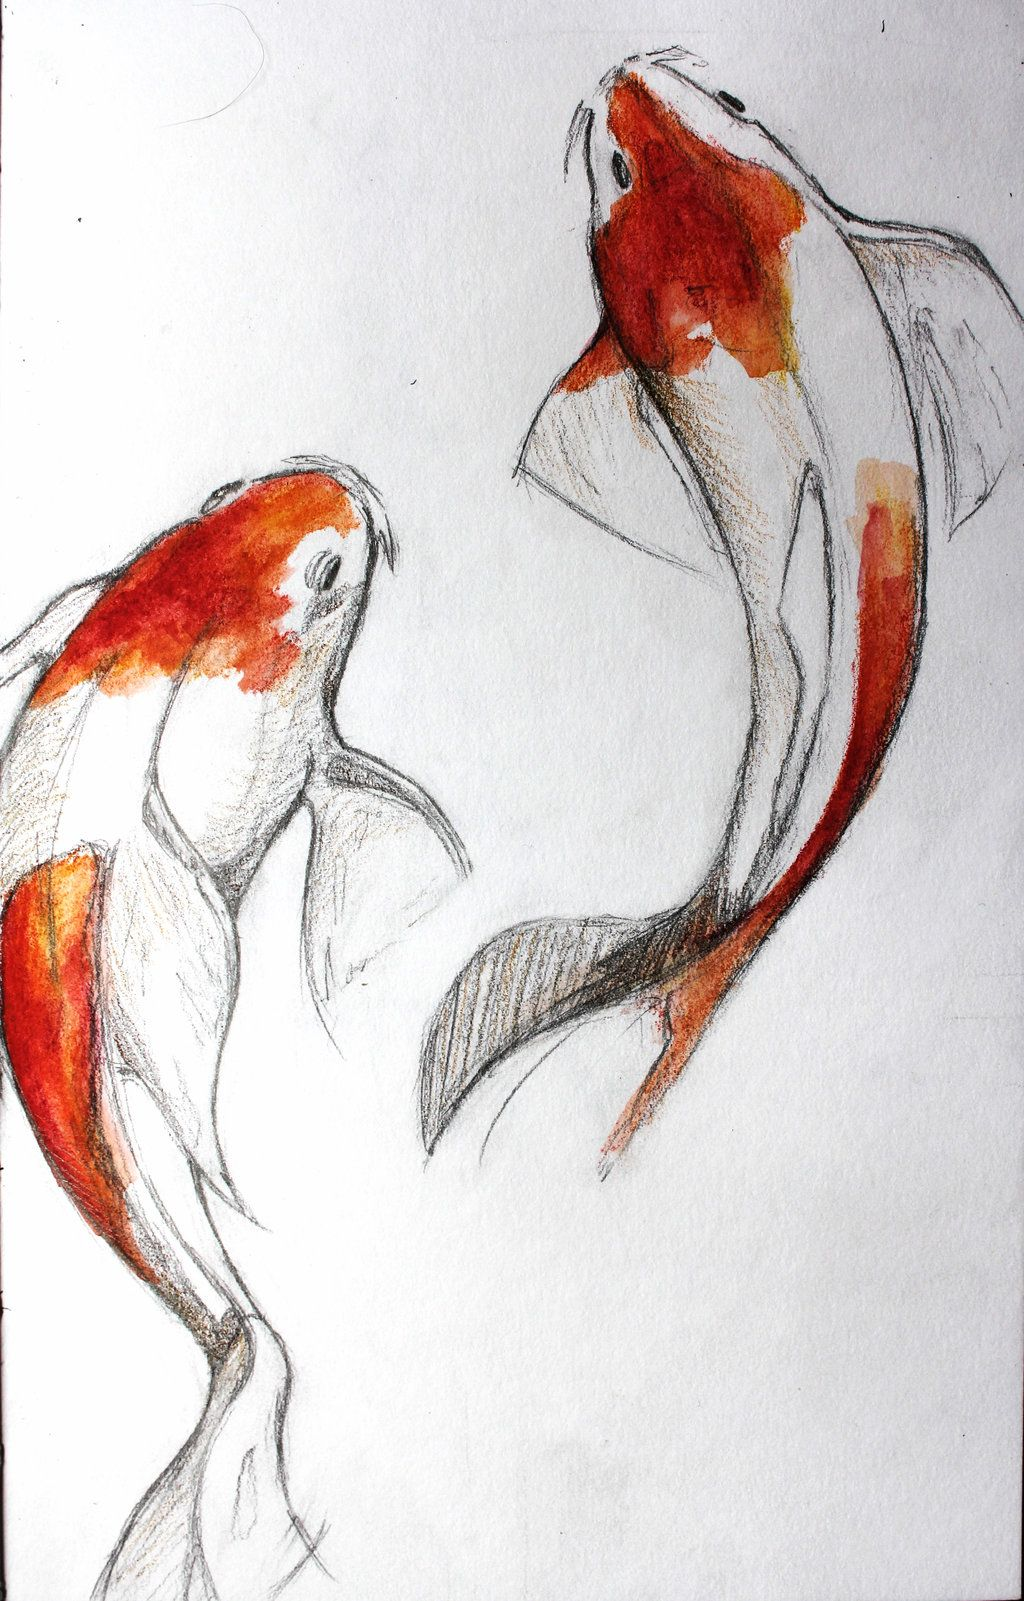 It's just a picture of Modest Drawing Of Coy Fish